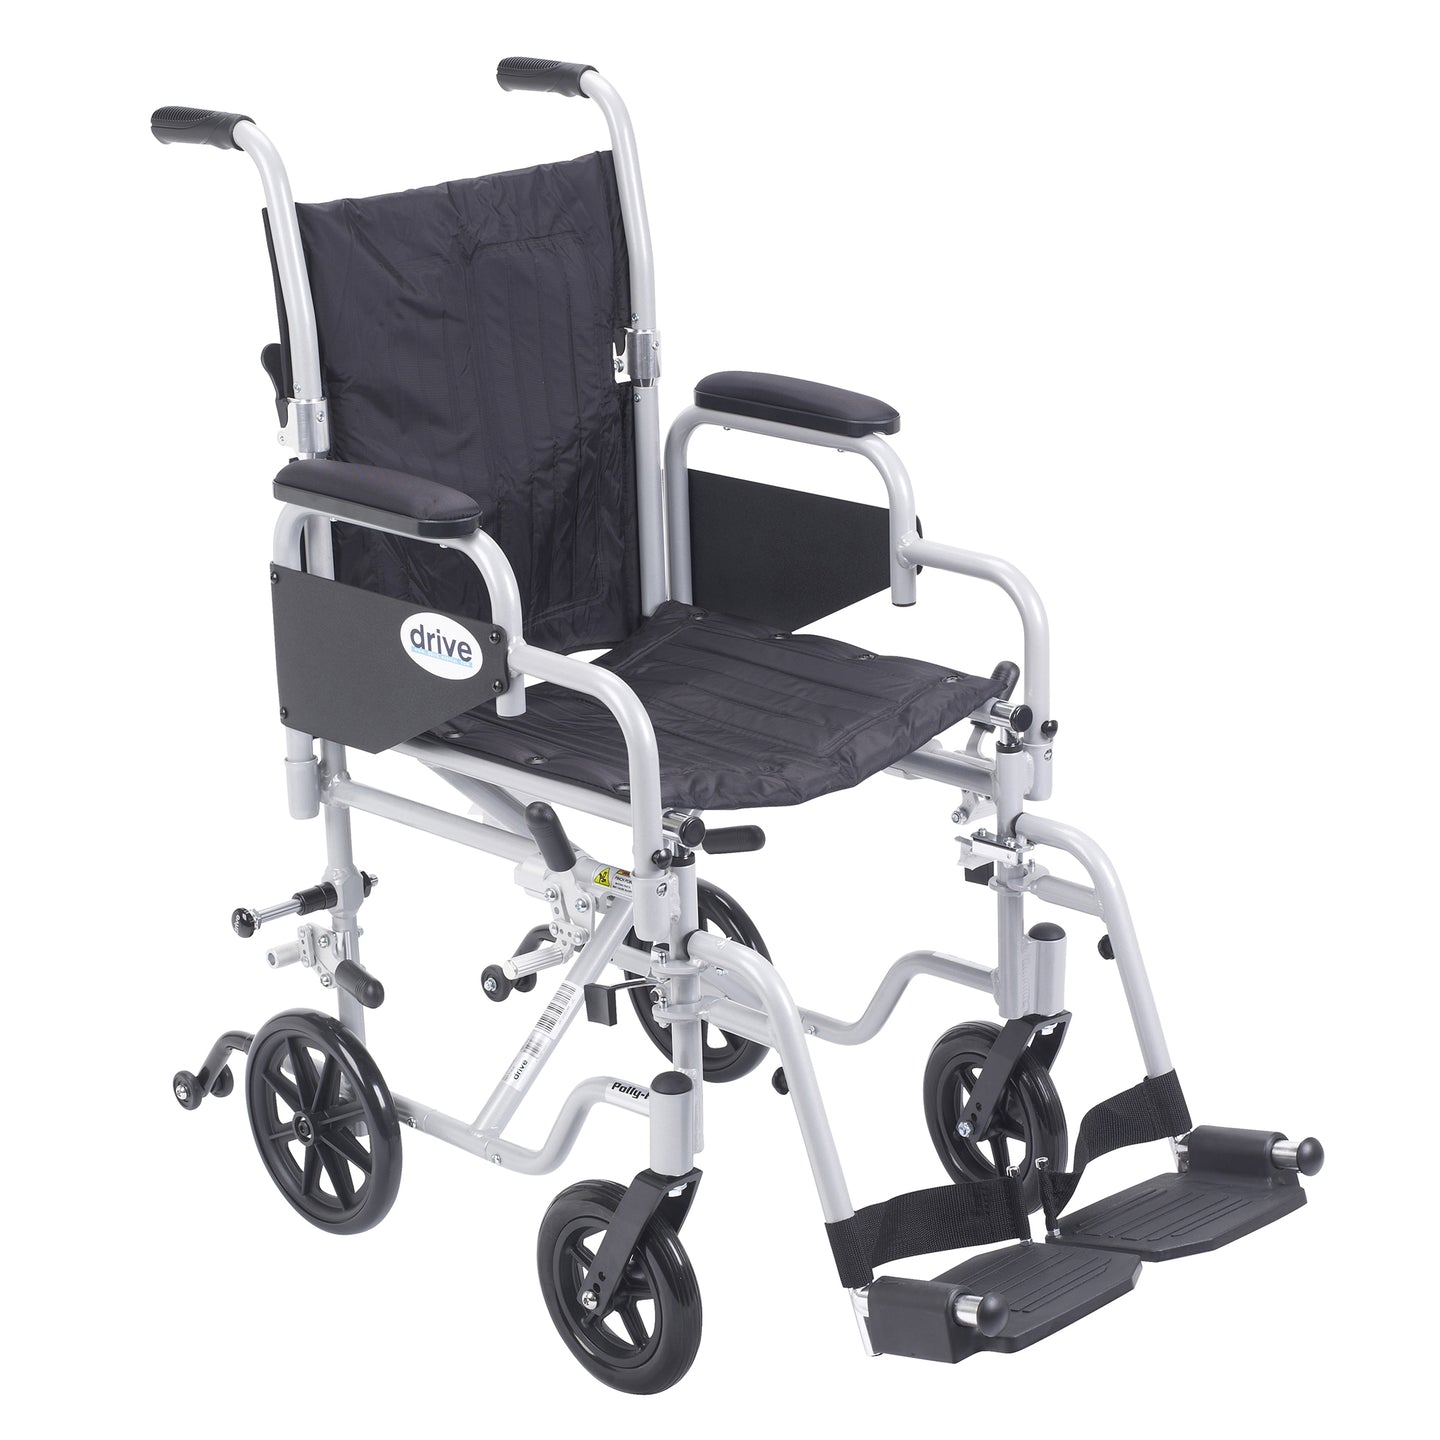 Drive Poly Fly Light Weight Transport Chair Wheelchair with Swing away Footrests- 16